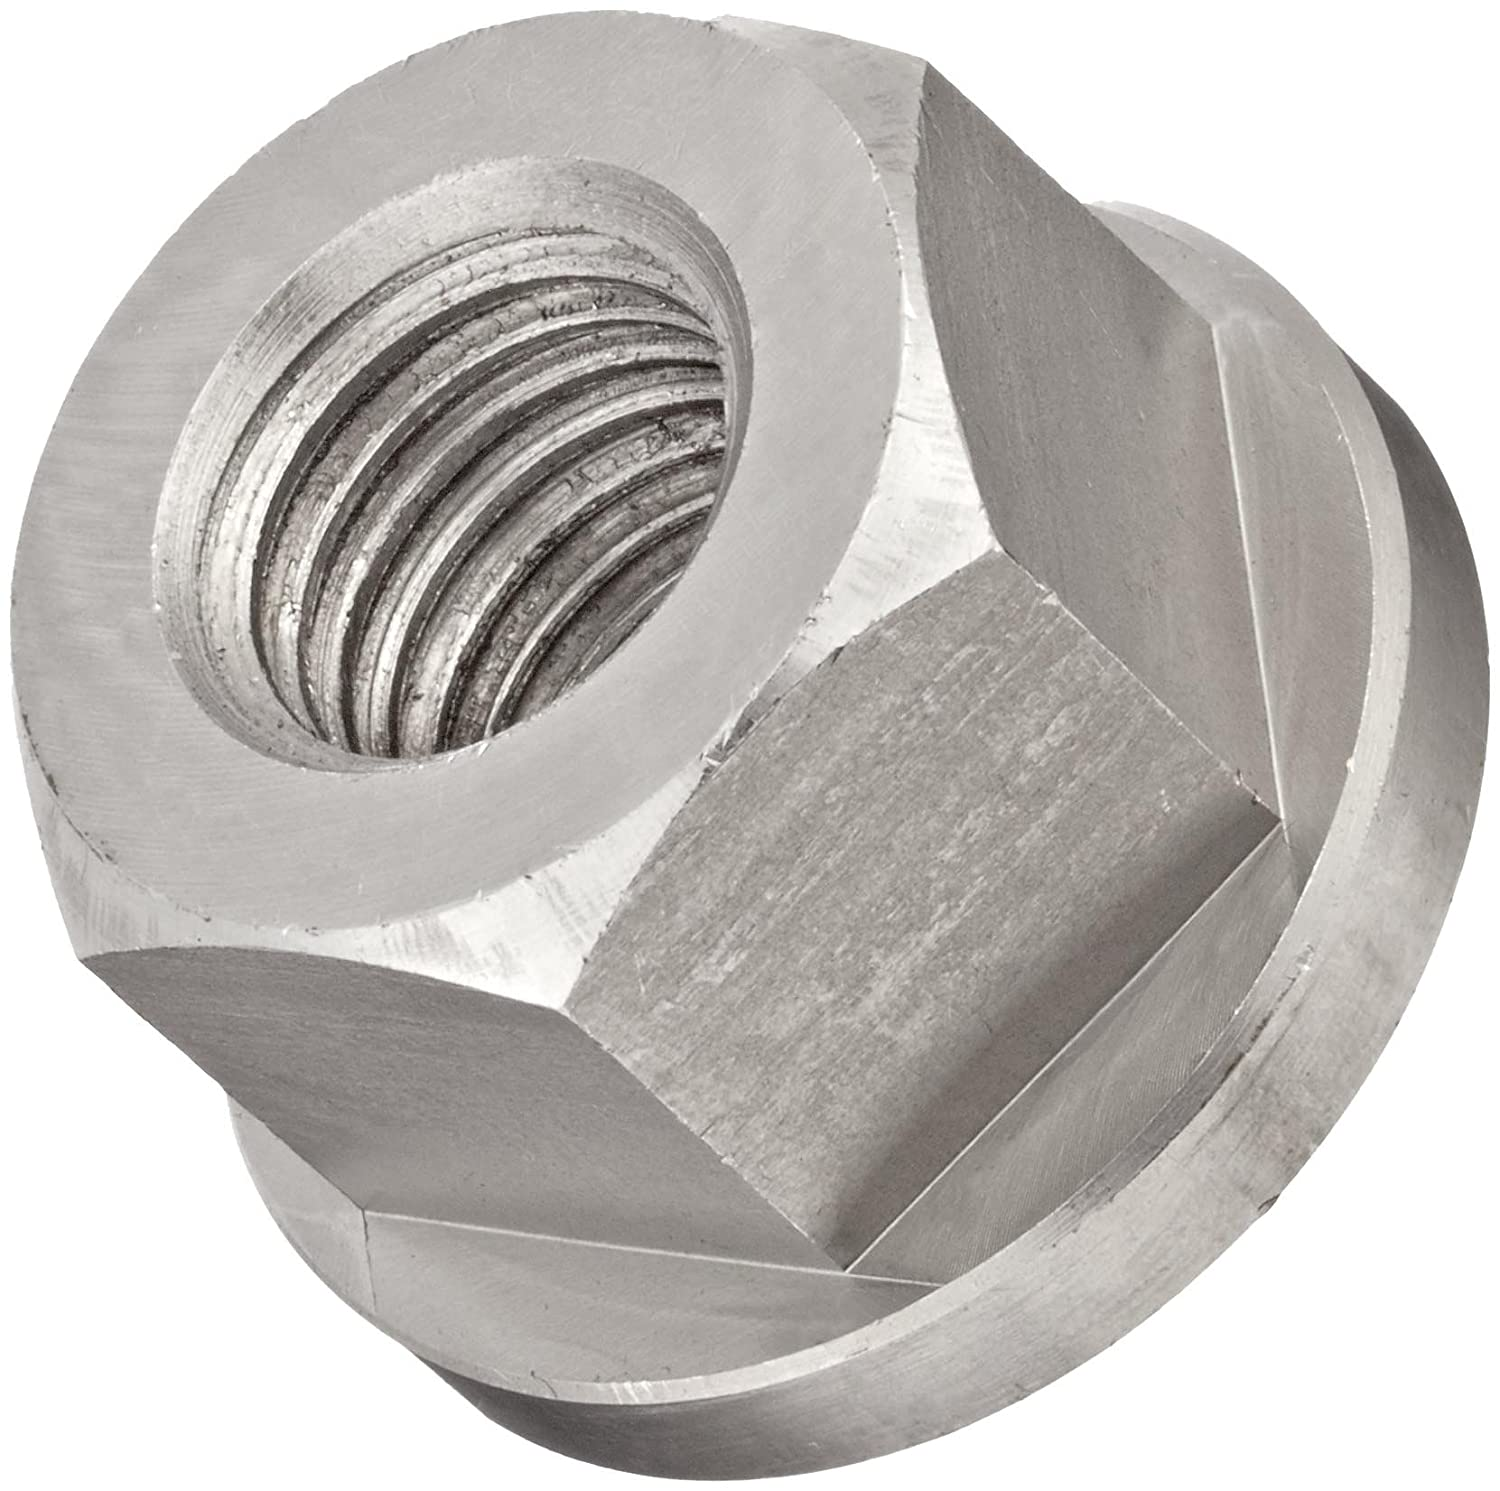 303 Stainless Steel Hex Nut Pack of 5 Right Hand Threads Class 6H 5//8-11 Threads TE-CO Made in US Class 6H 5//8-11 Threads Plain Finish